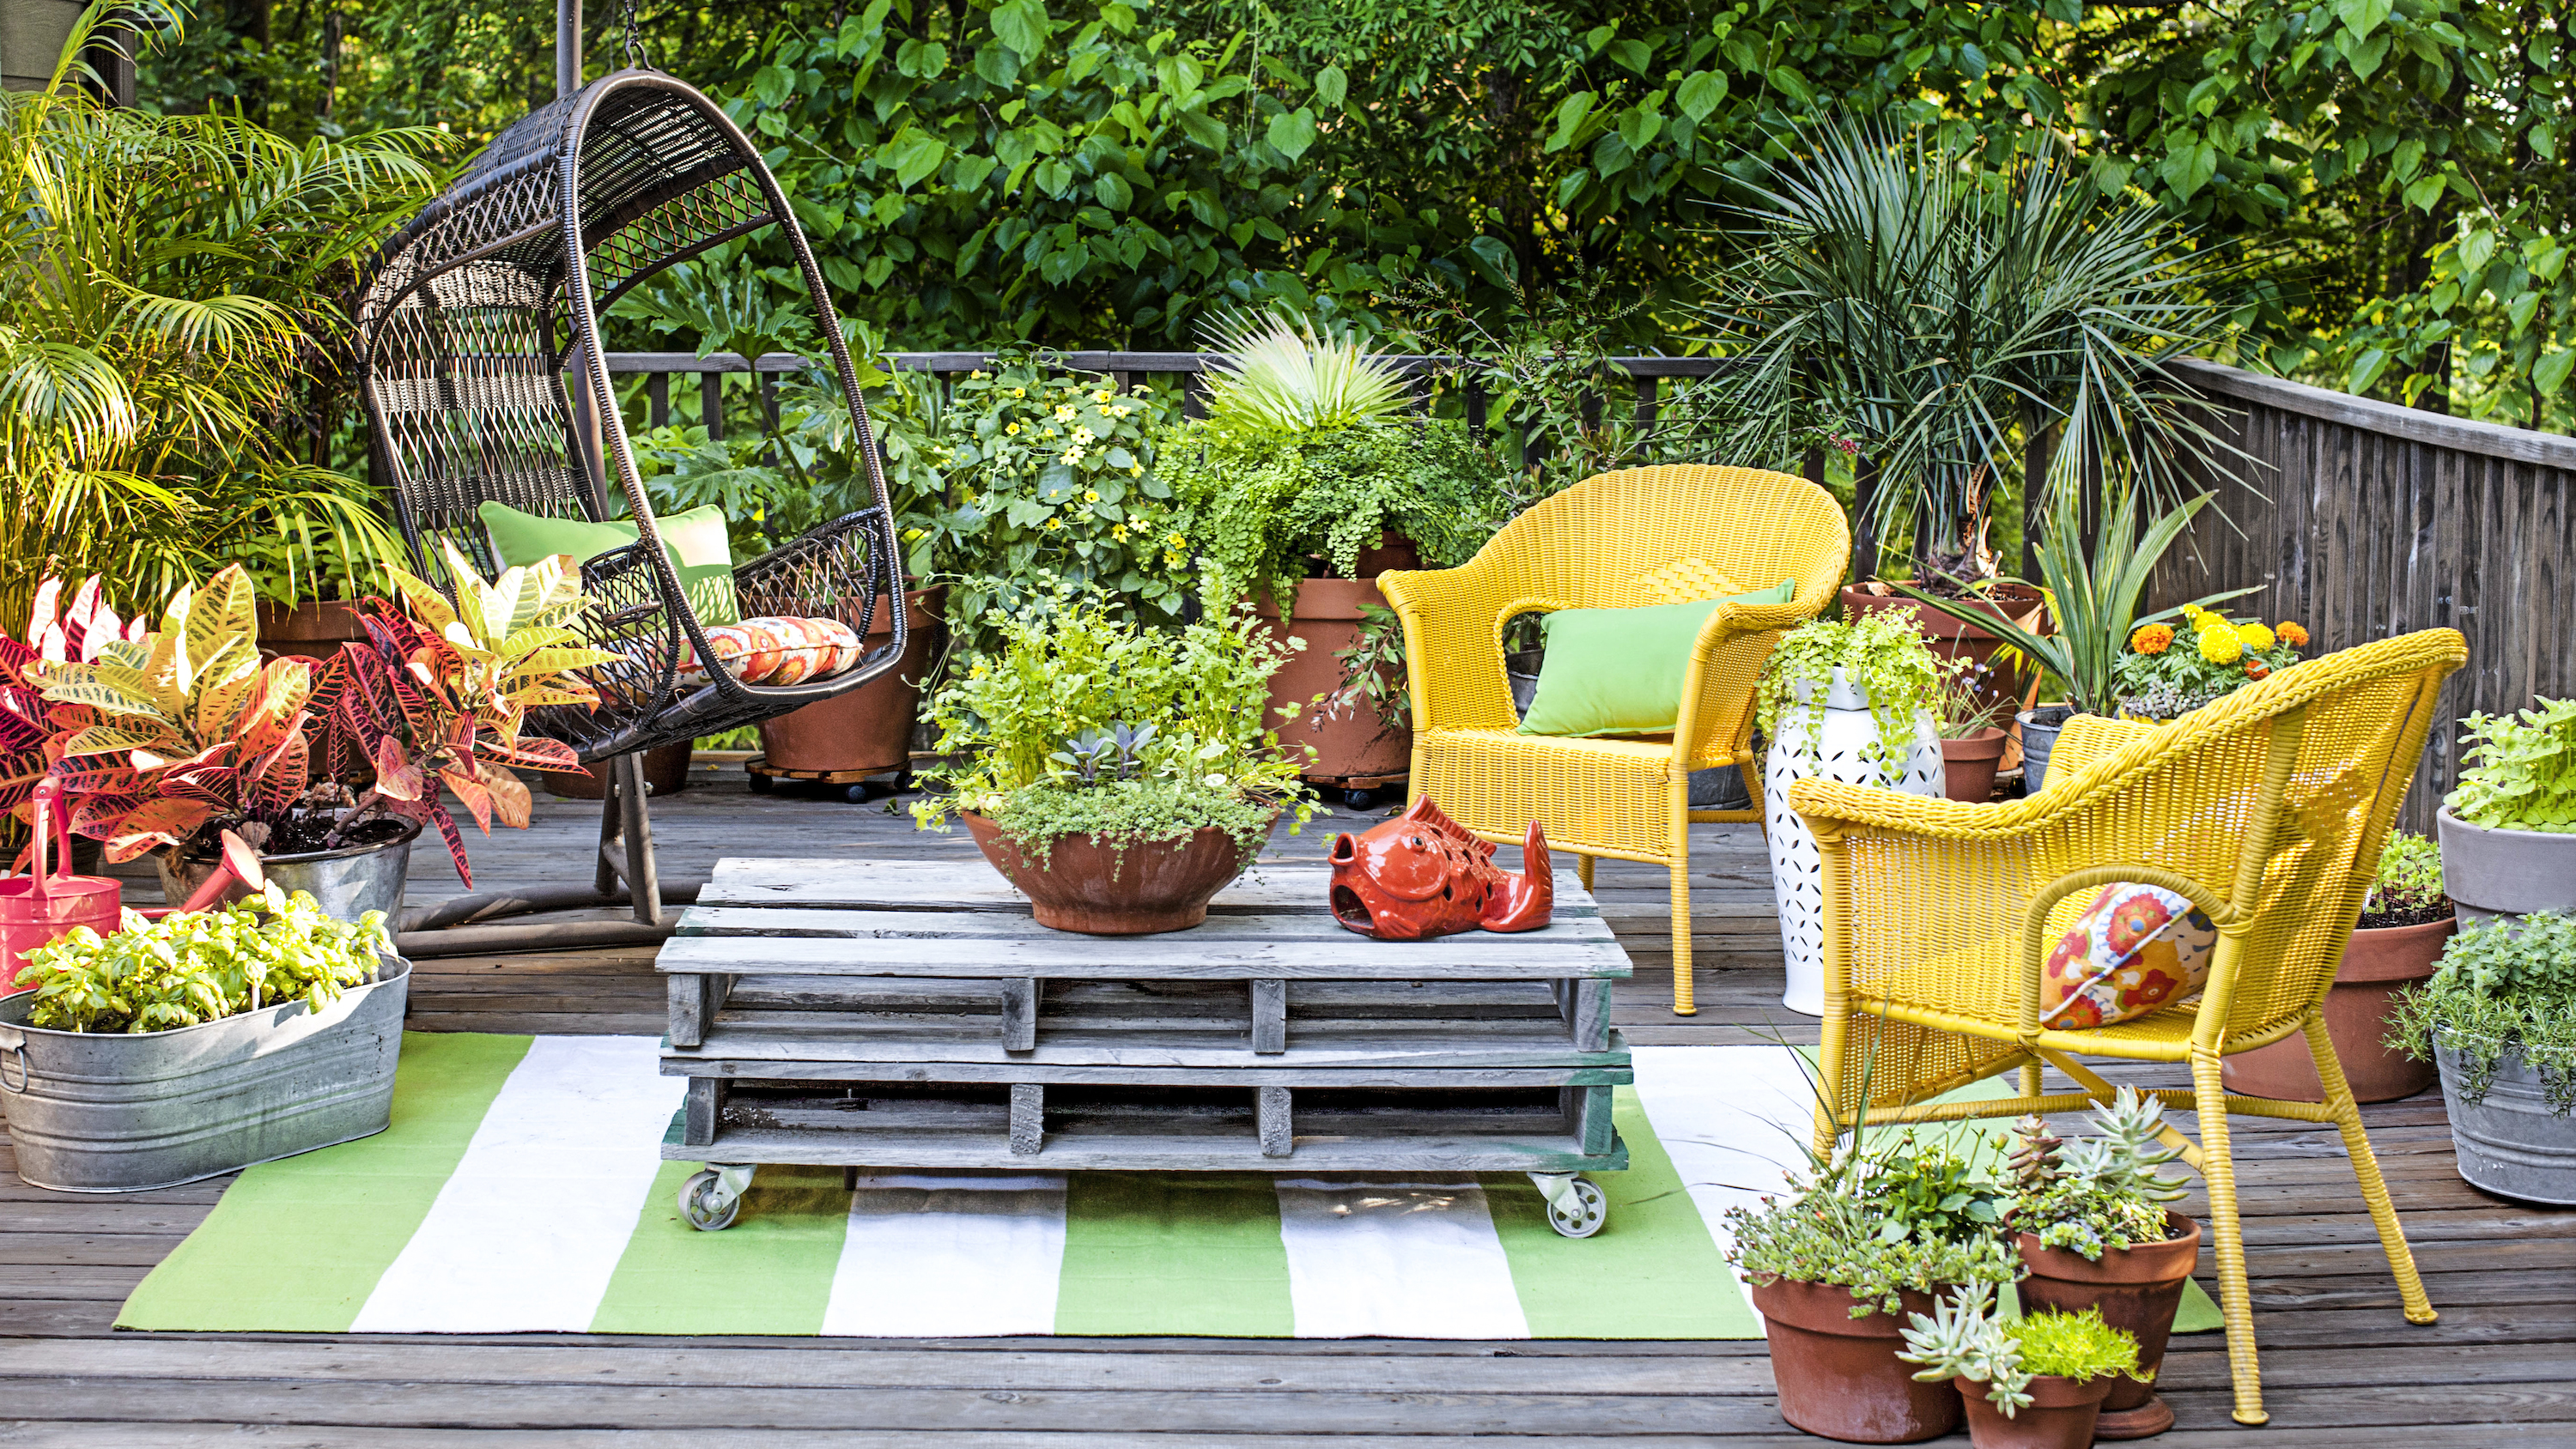 Luxury Garden Ideas for Small Gardens